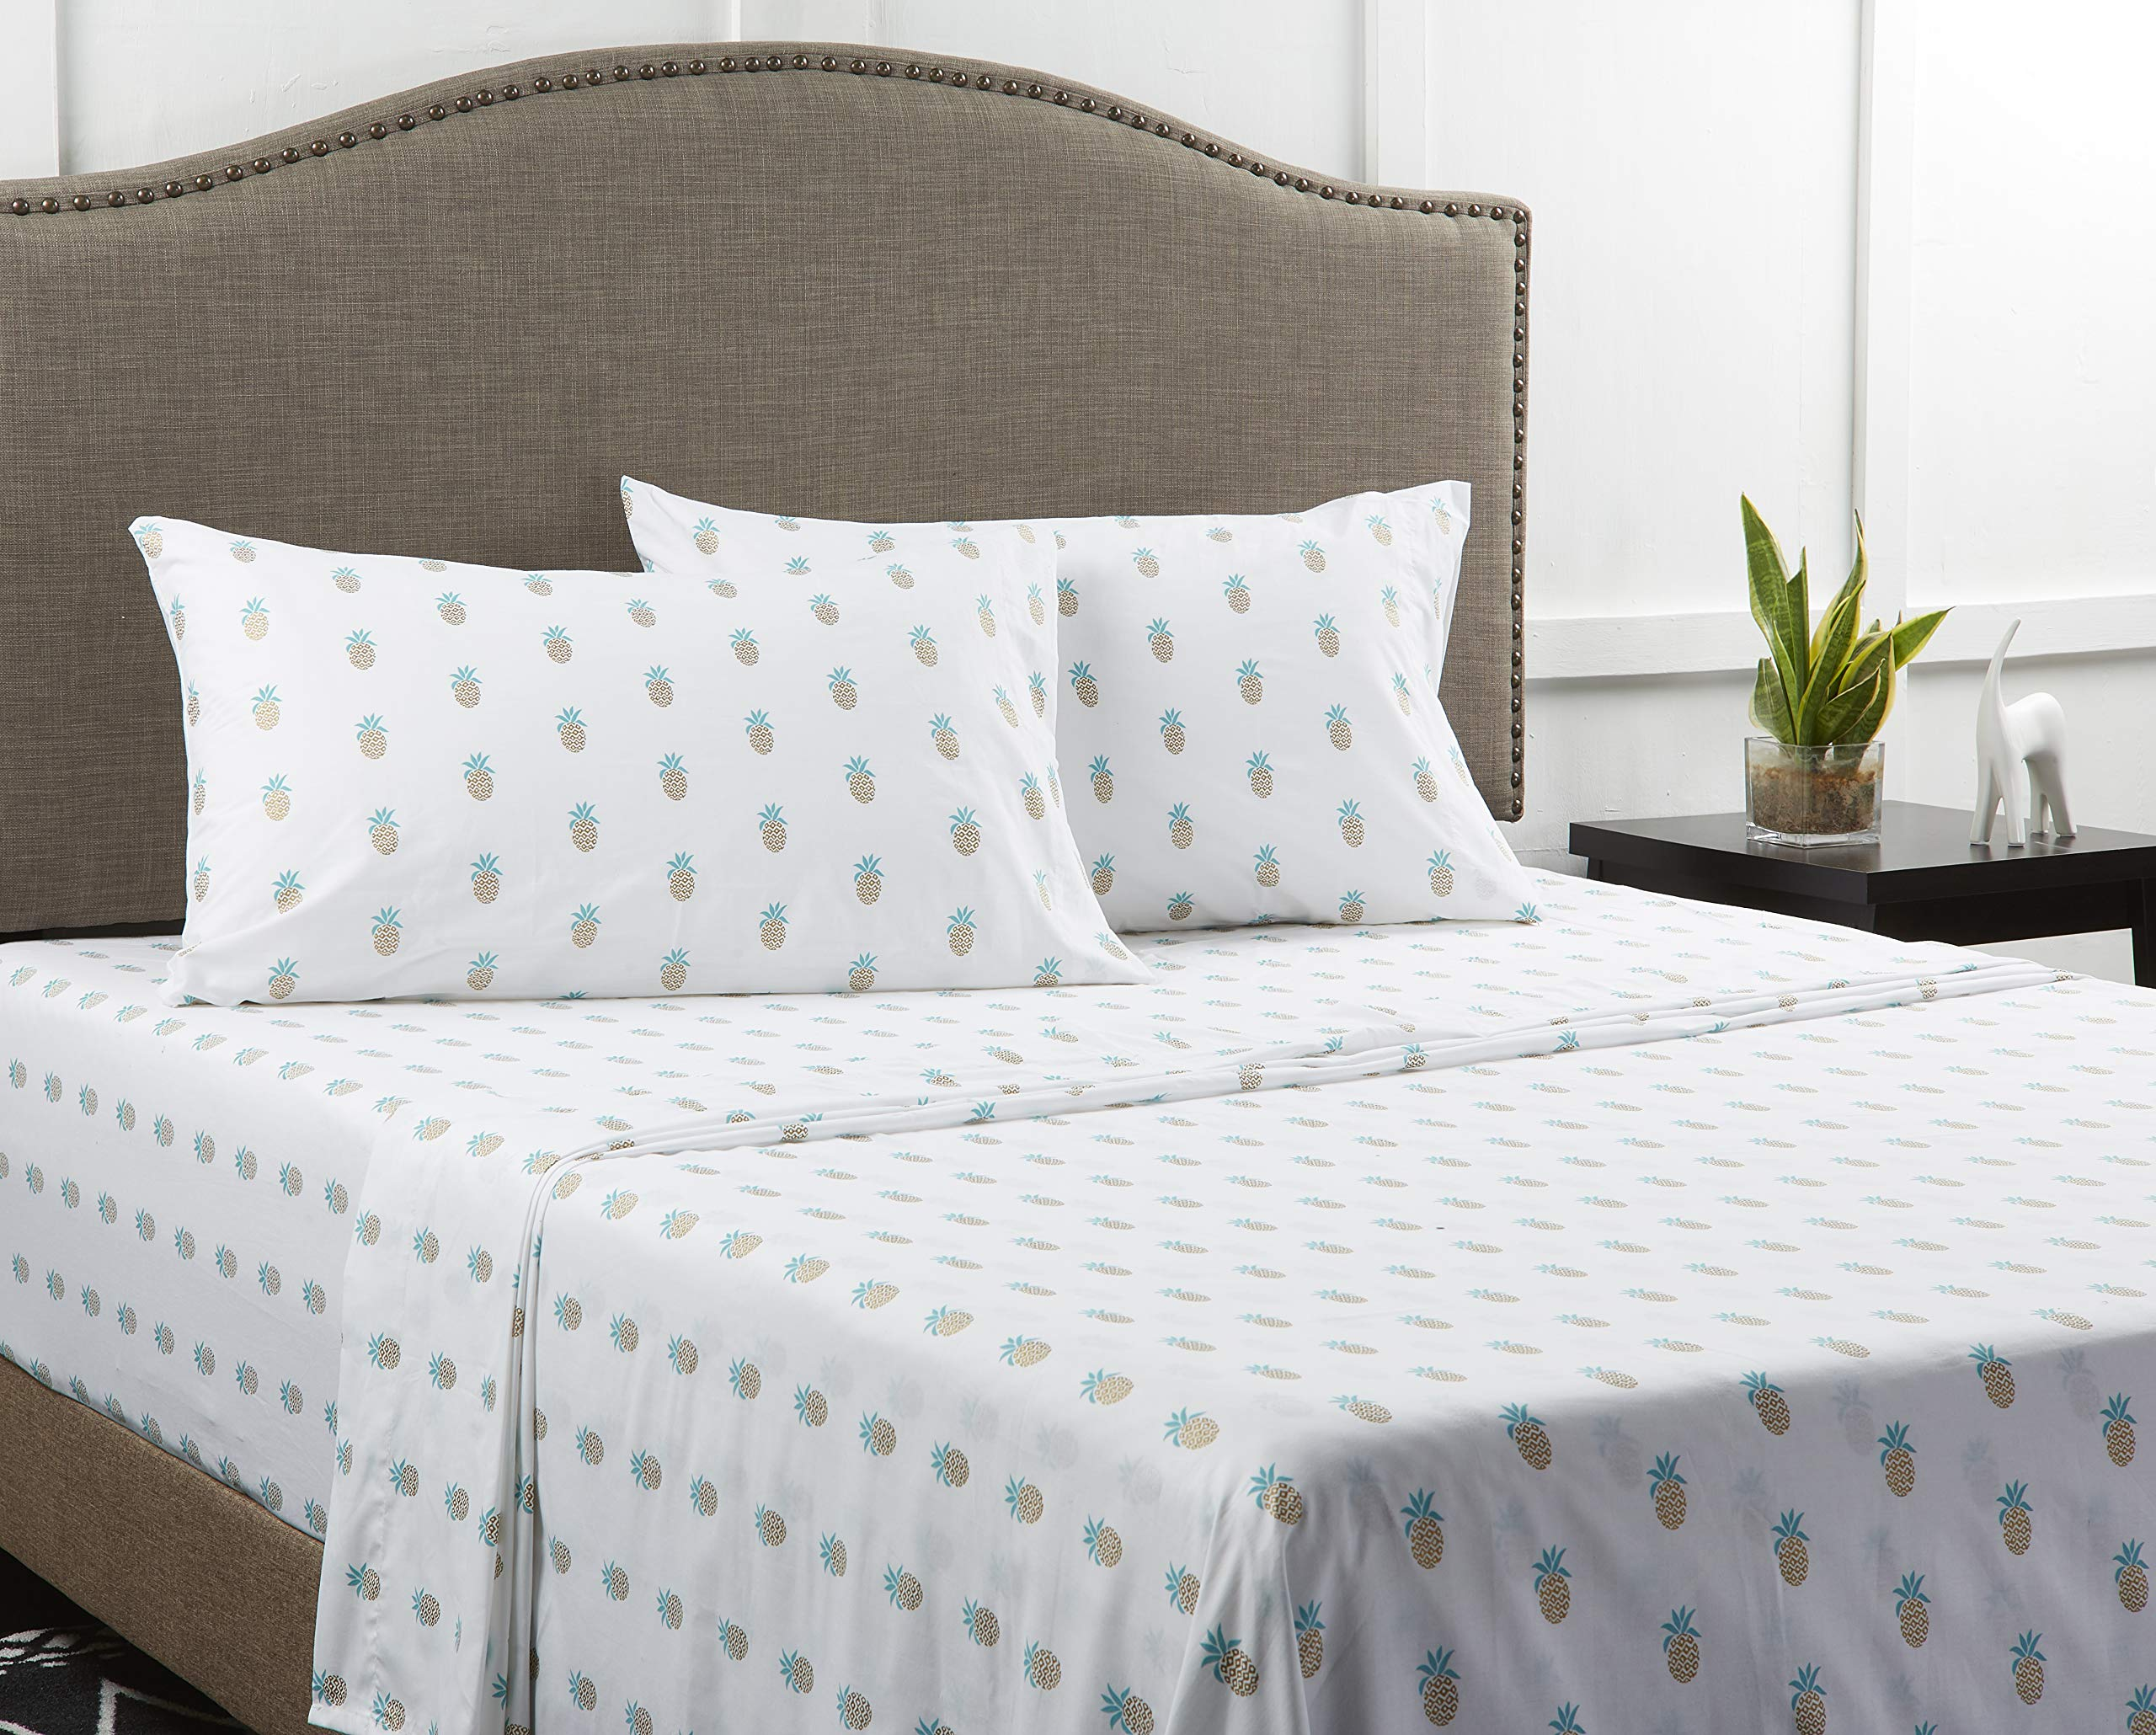 Mainstays ''Back to School'' 180 Thread Count Sheet Set, Fun & Modern! Your Favorites- Florals, Llama, Pineapples, Cactuses, Geometric Triangles! Flat, Fitted, & Pillowcase Set! (Queen, Pineapple)